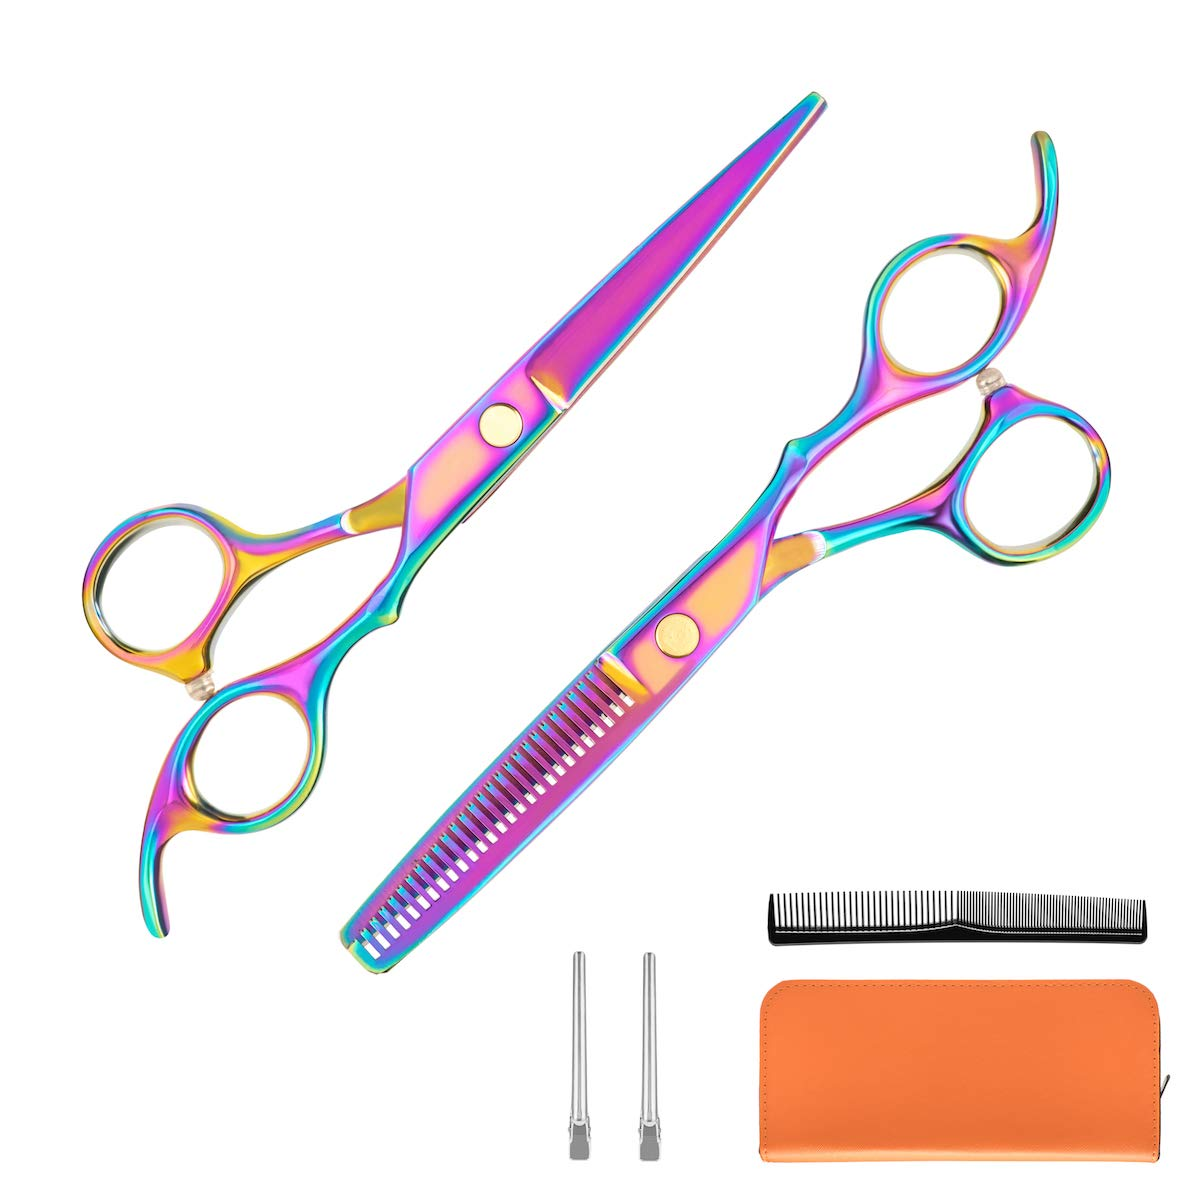 Kilajojo Hair Scissors and thinning shears set - Professional Barber Scissors/barber Shears - Sharp Edges and Rainbow Color Hair Shears/thinning scissors/hairdresser scissors with Case (set) by kila jojo